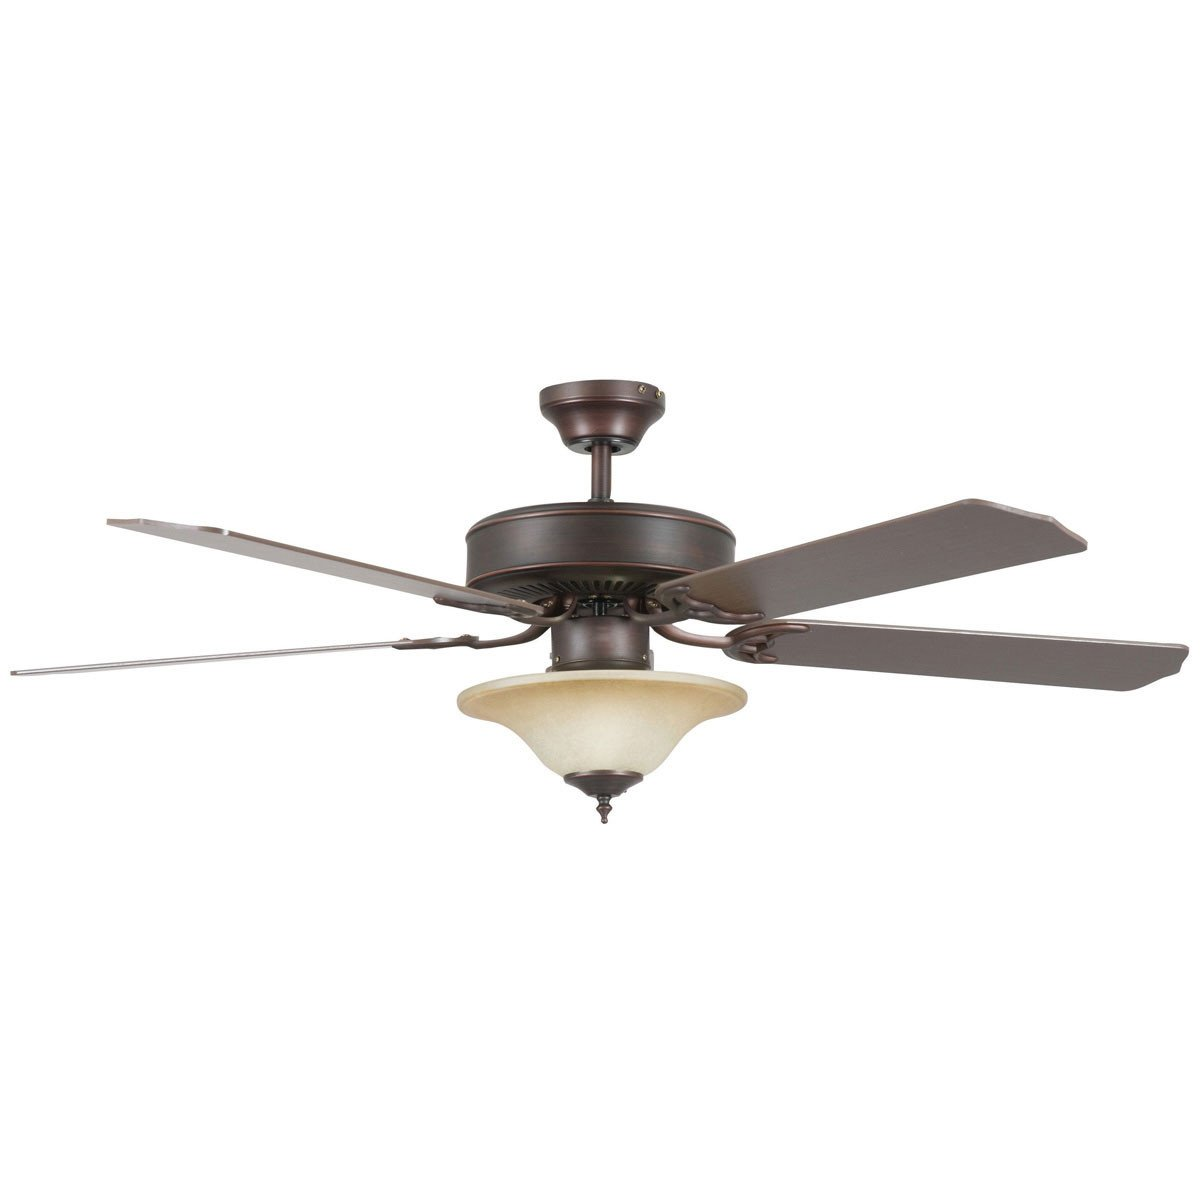 "Concord Fans 52"" Energy Saver Oil Rubbed Bronze Ceiling Fan with Light Kit"